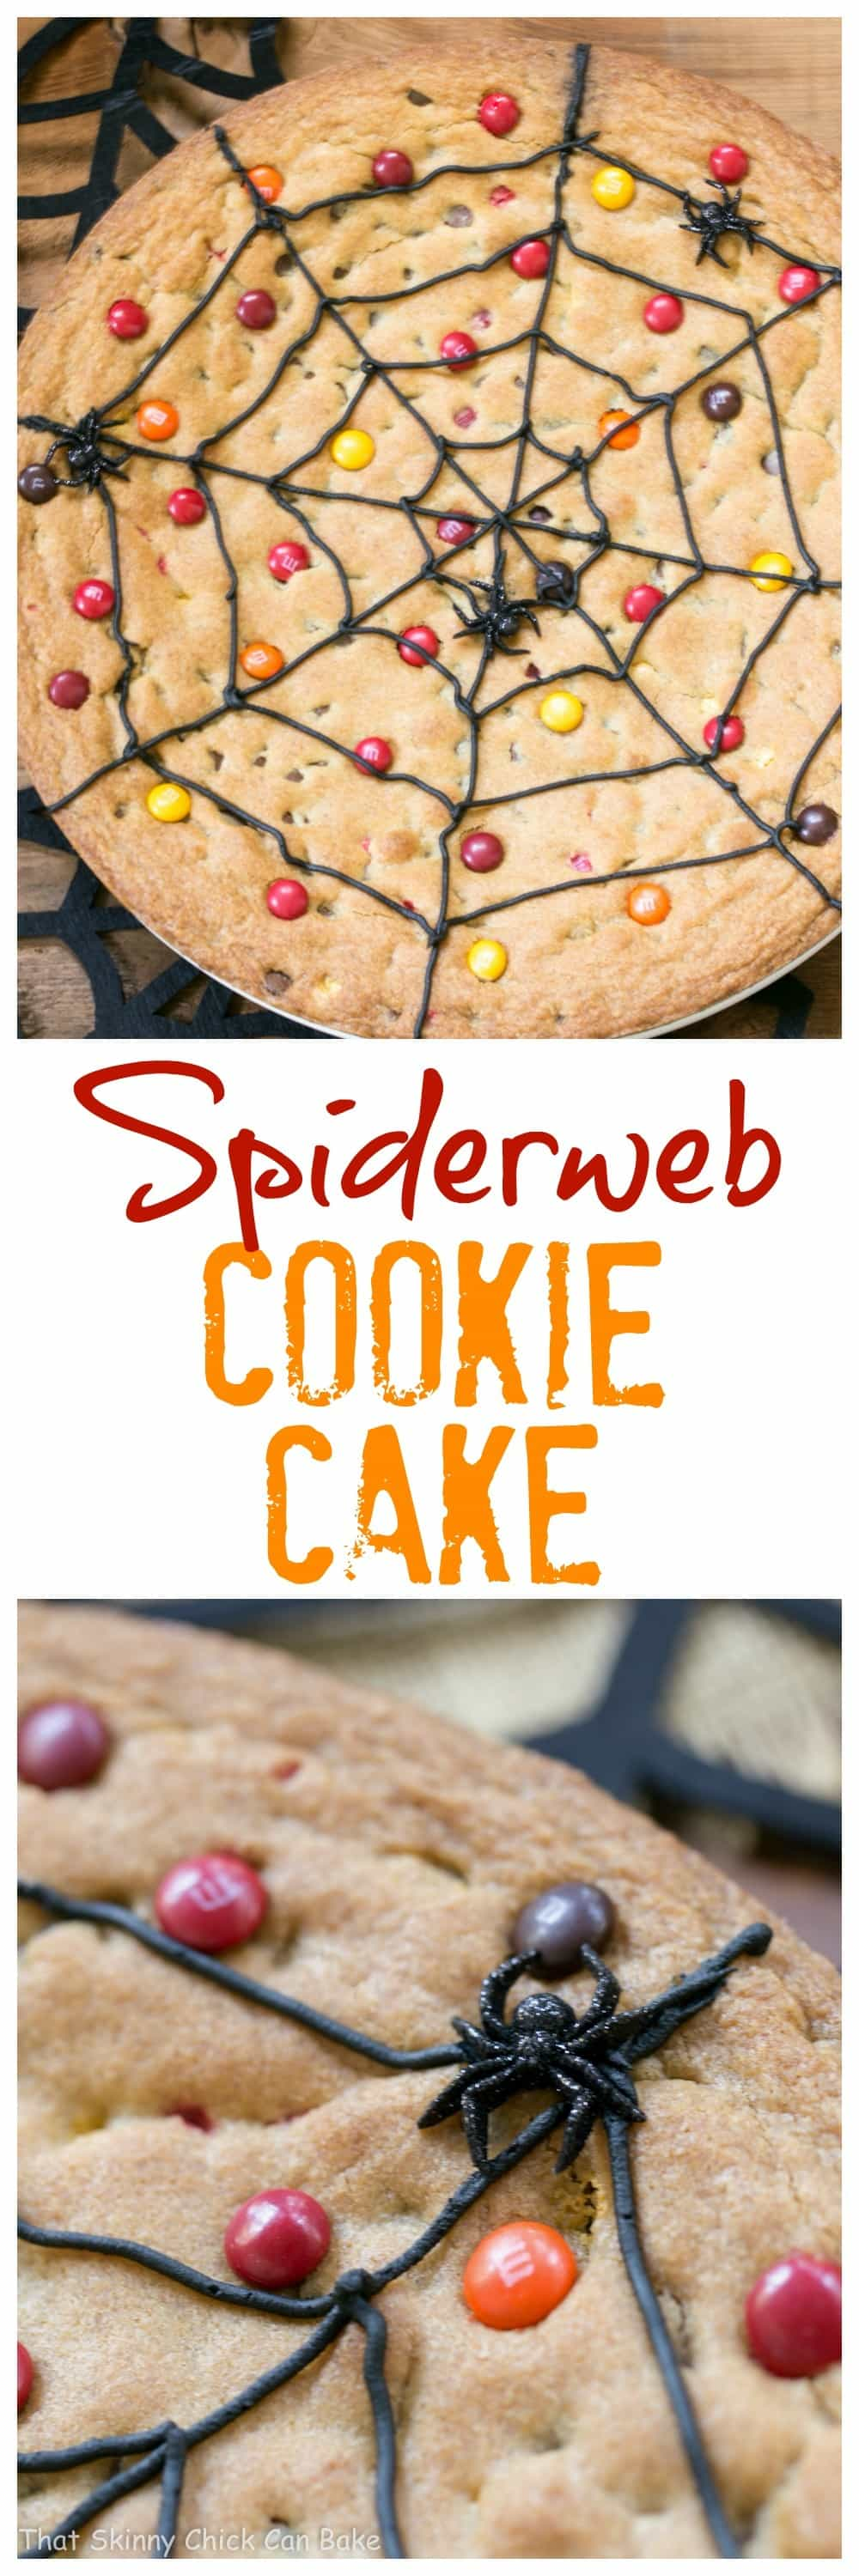 Spiderweb Cookie Cake - An easy Halloween dessert that young and old will love! #Halloween #cookiecake #spiderweb